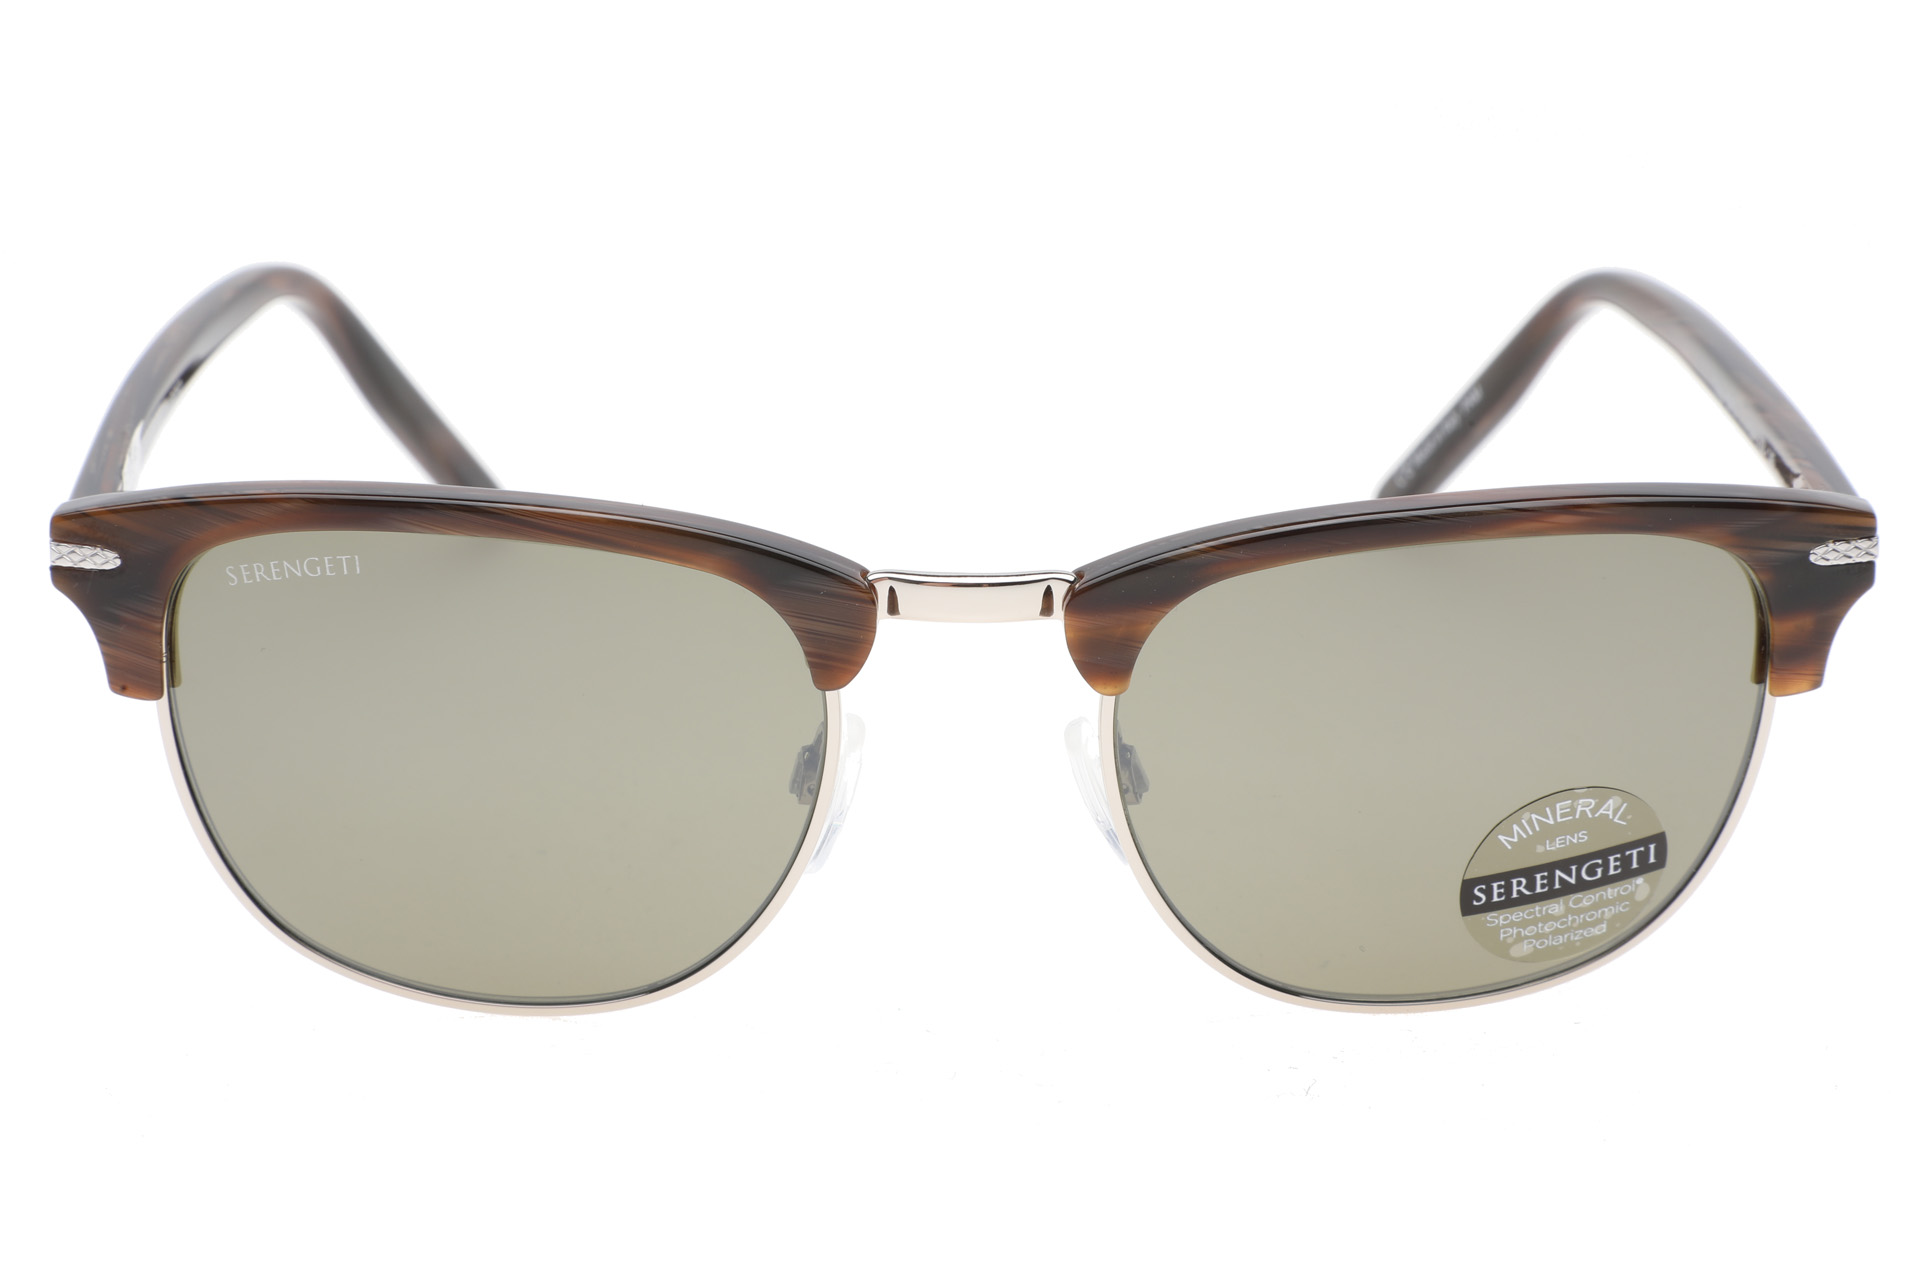 Serengeti Alray 8945 (Shiny Wood Grain / Shiny Silver) Gepolariseerd